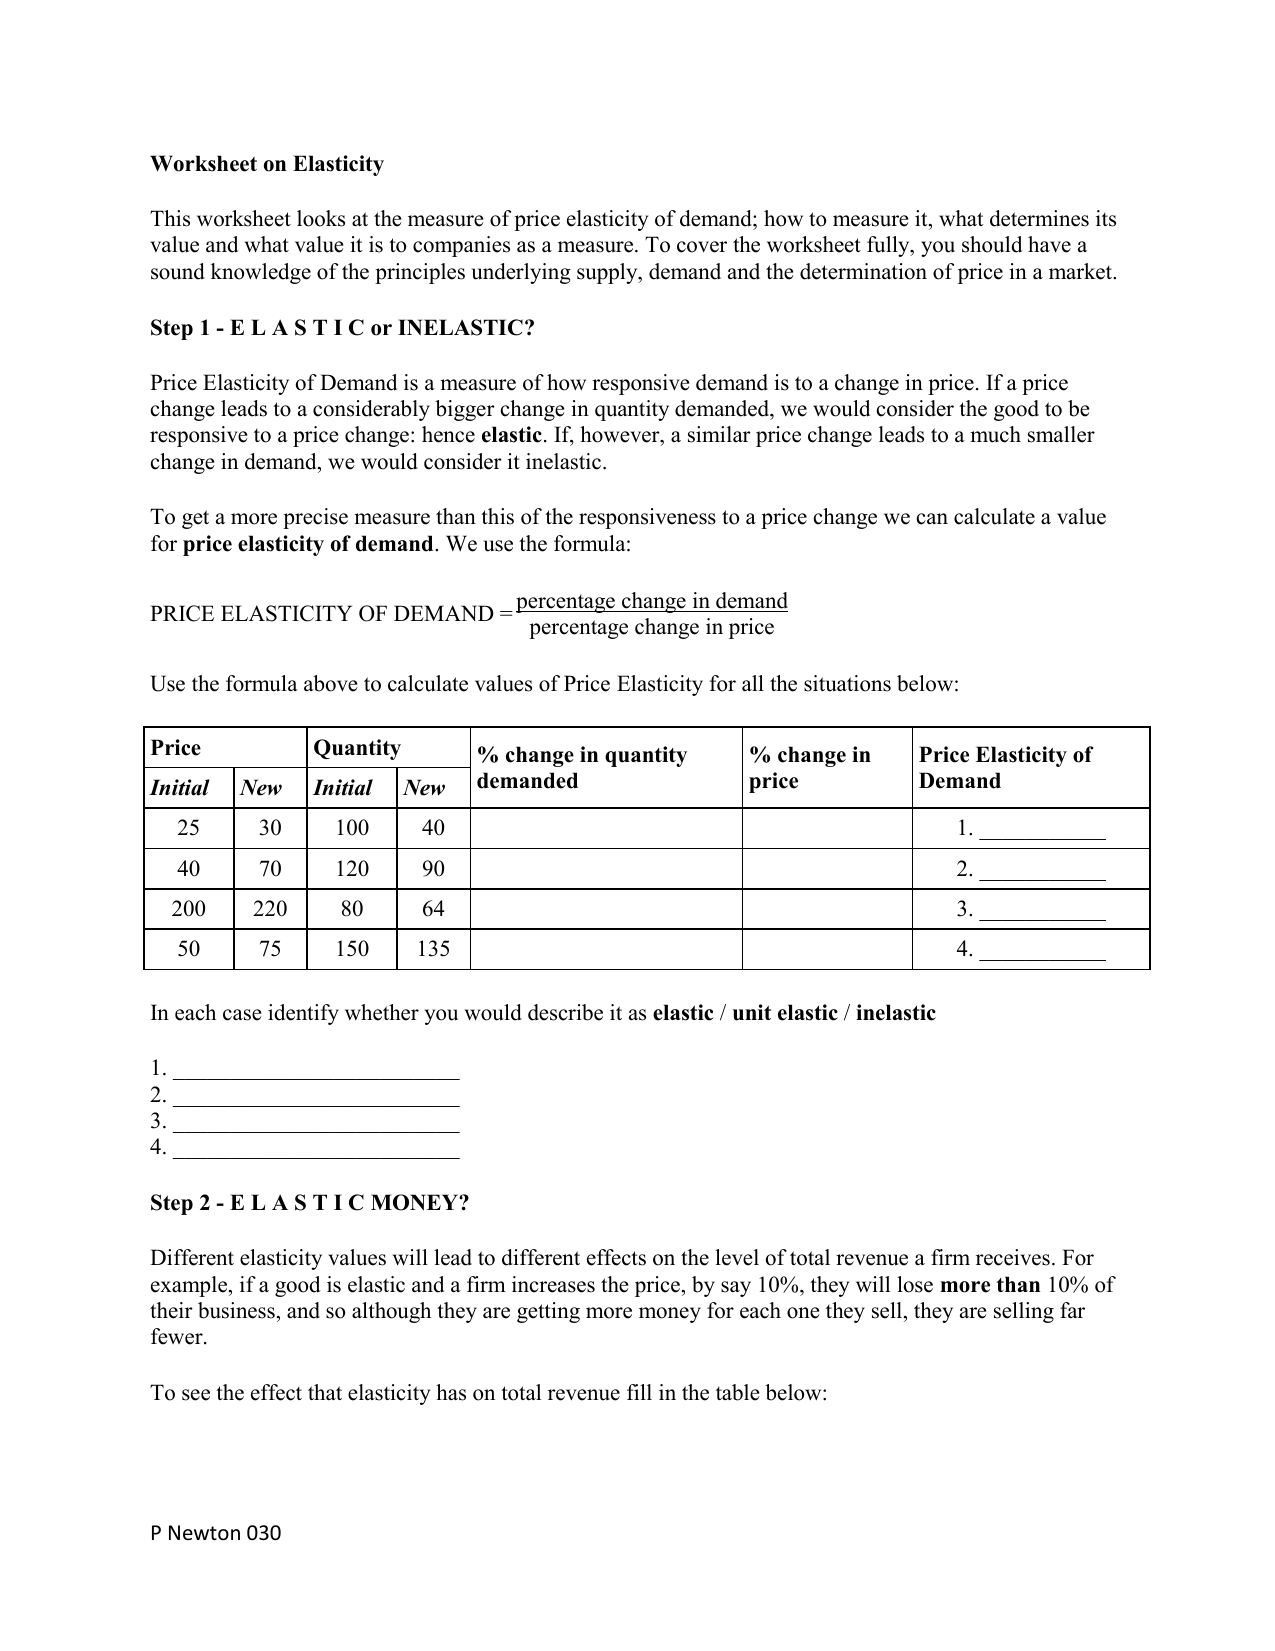 This Worksheet Looks At The Measure Of Price Elasticity Of